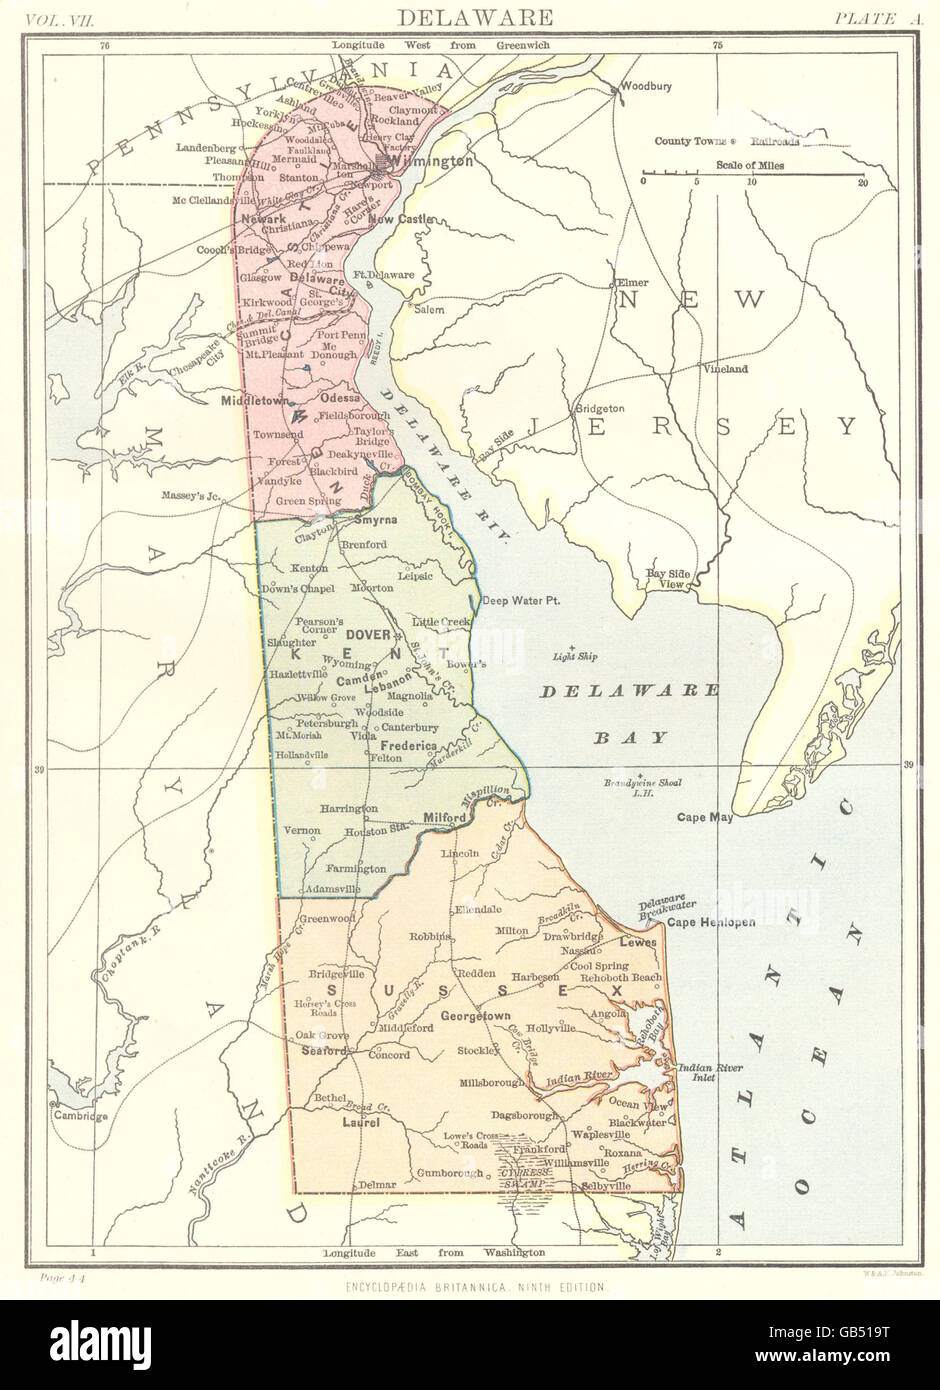 Delaware State Map on